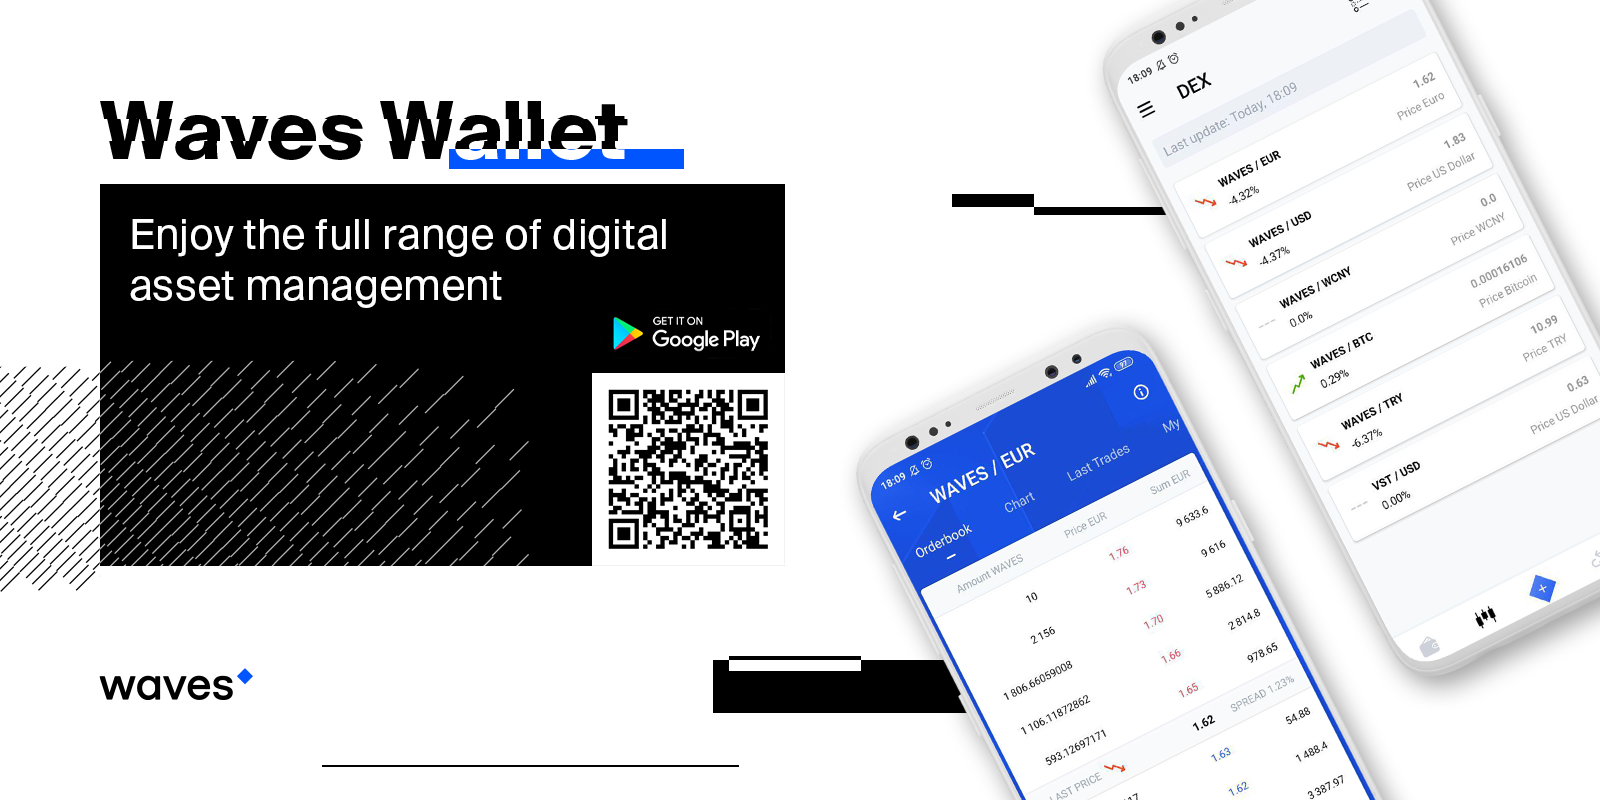 GitHub - wavesplatform/WavesWallet-android: Waves Wallet on